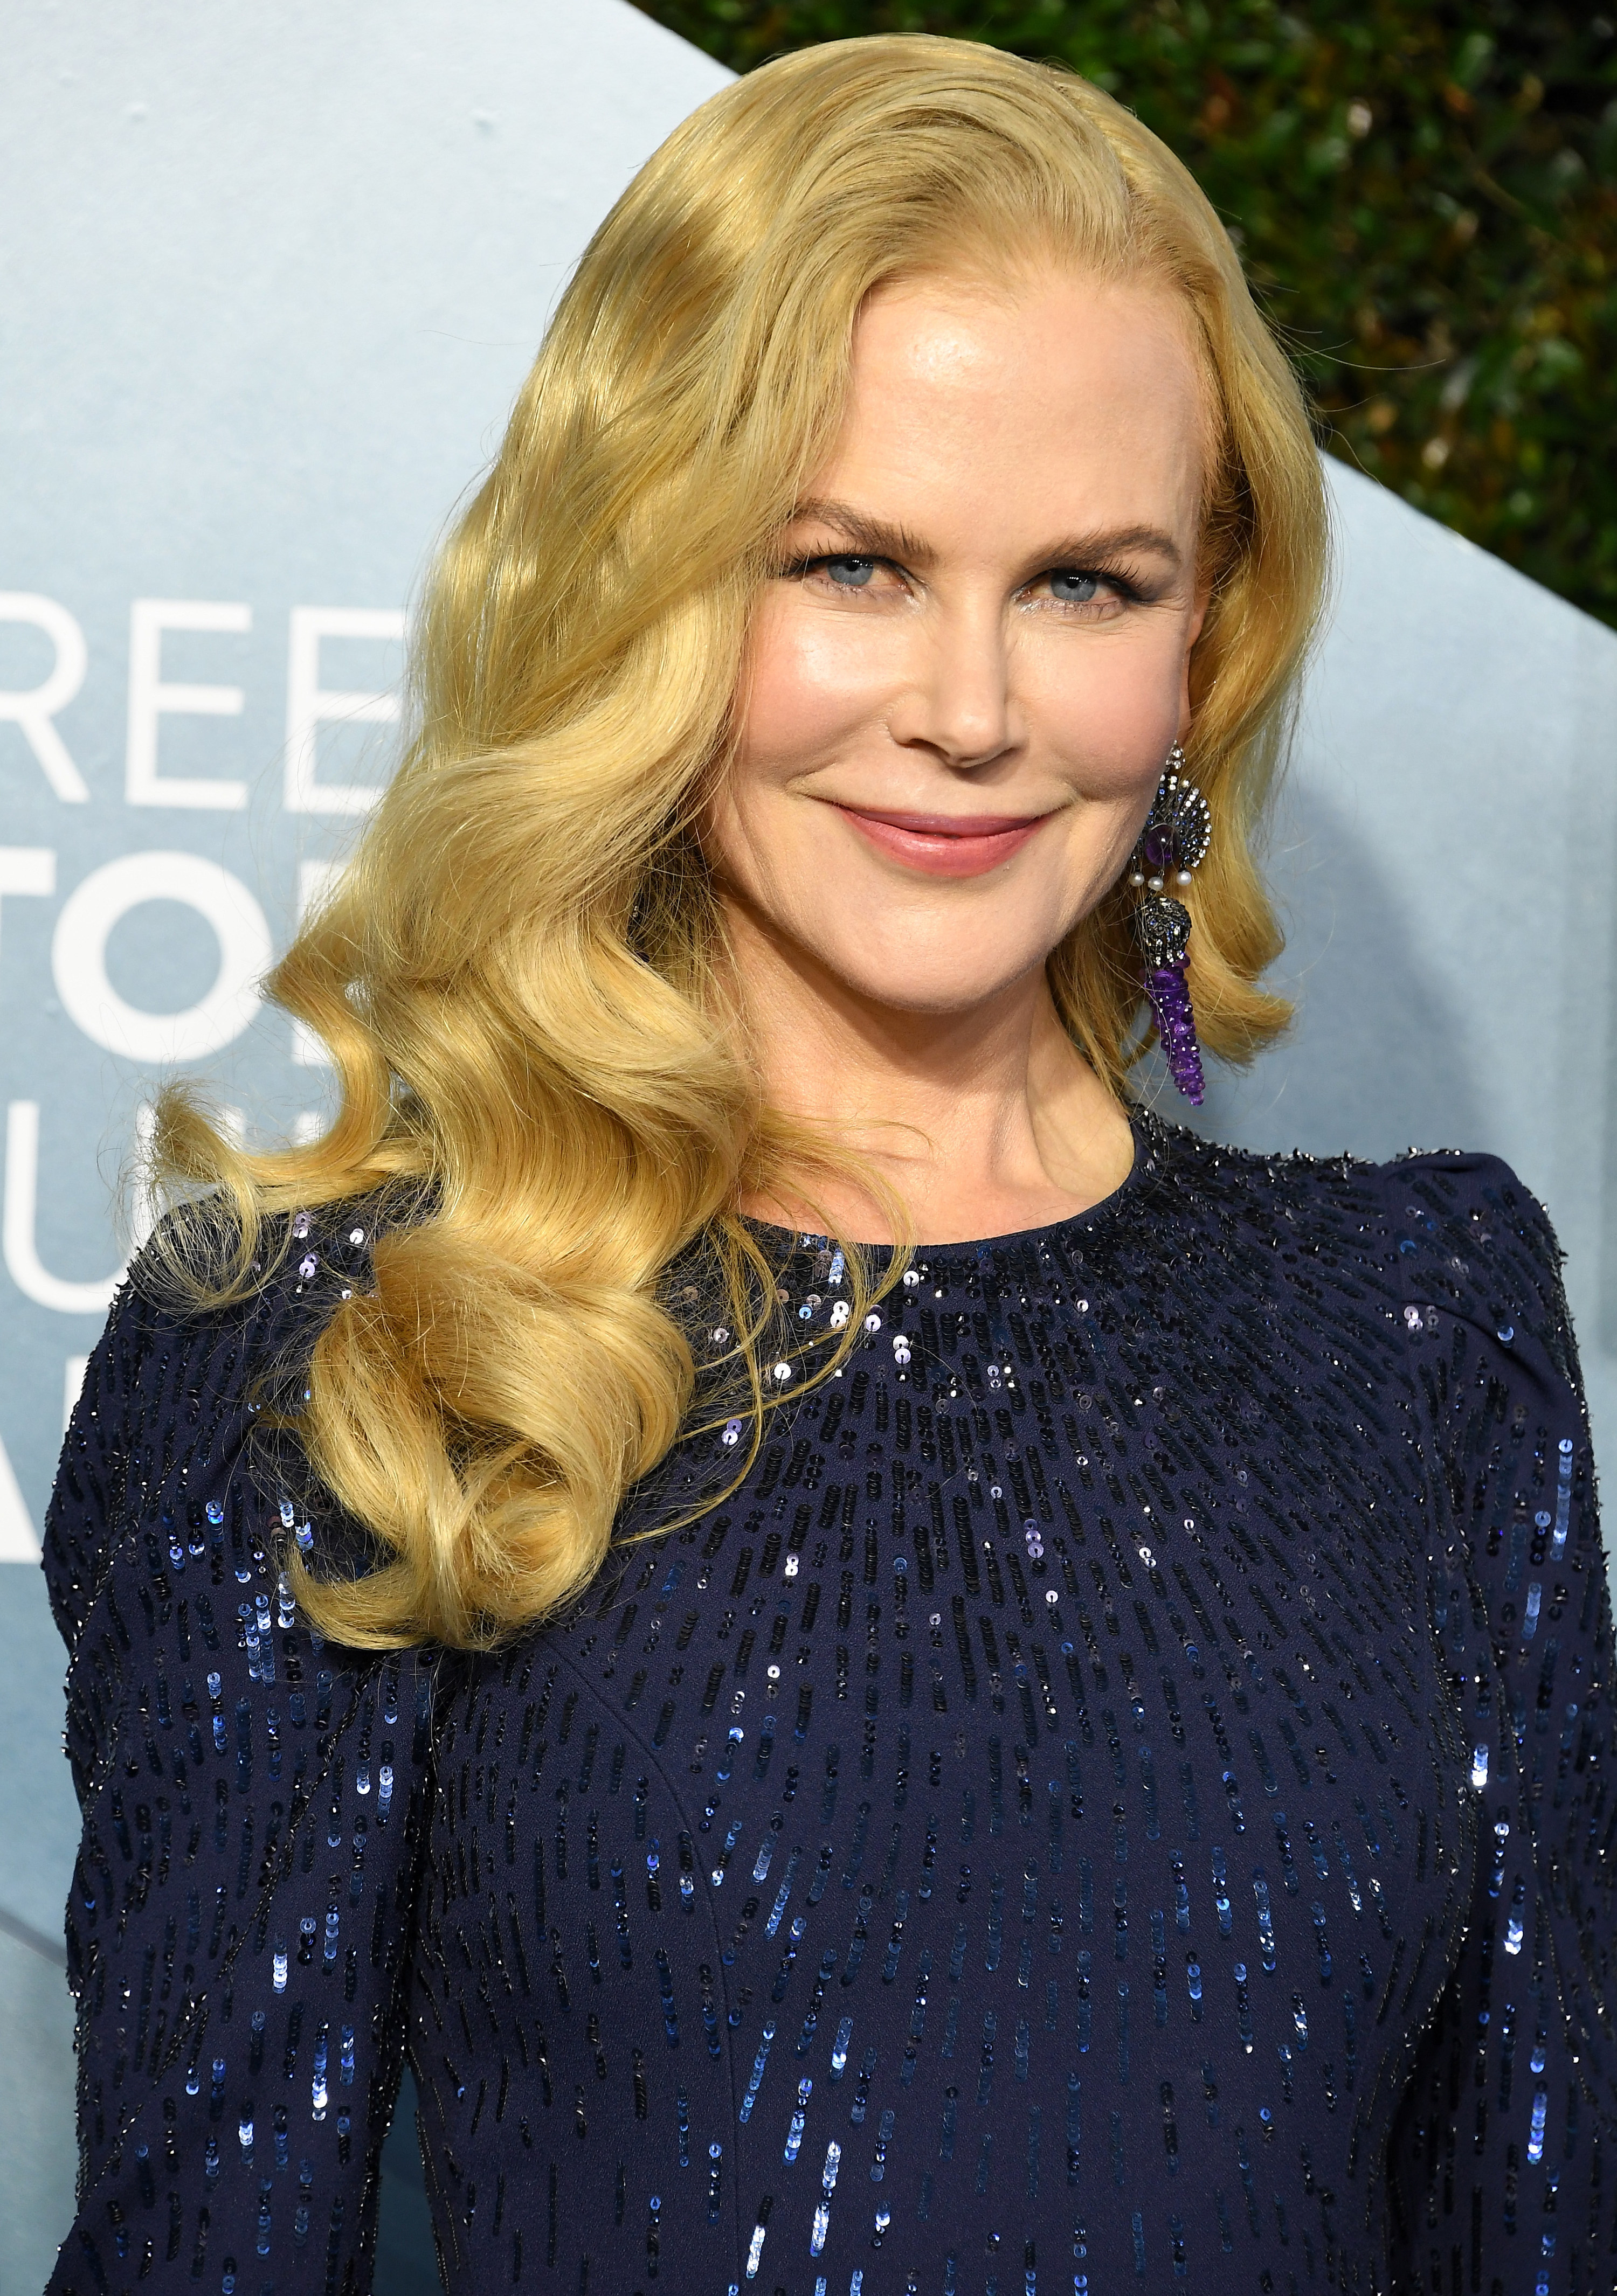 Nicole Kidman arrives at the 26th Annual Screen Actors Guild Awards in a sequined gown